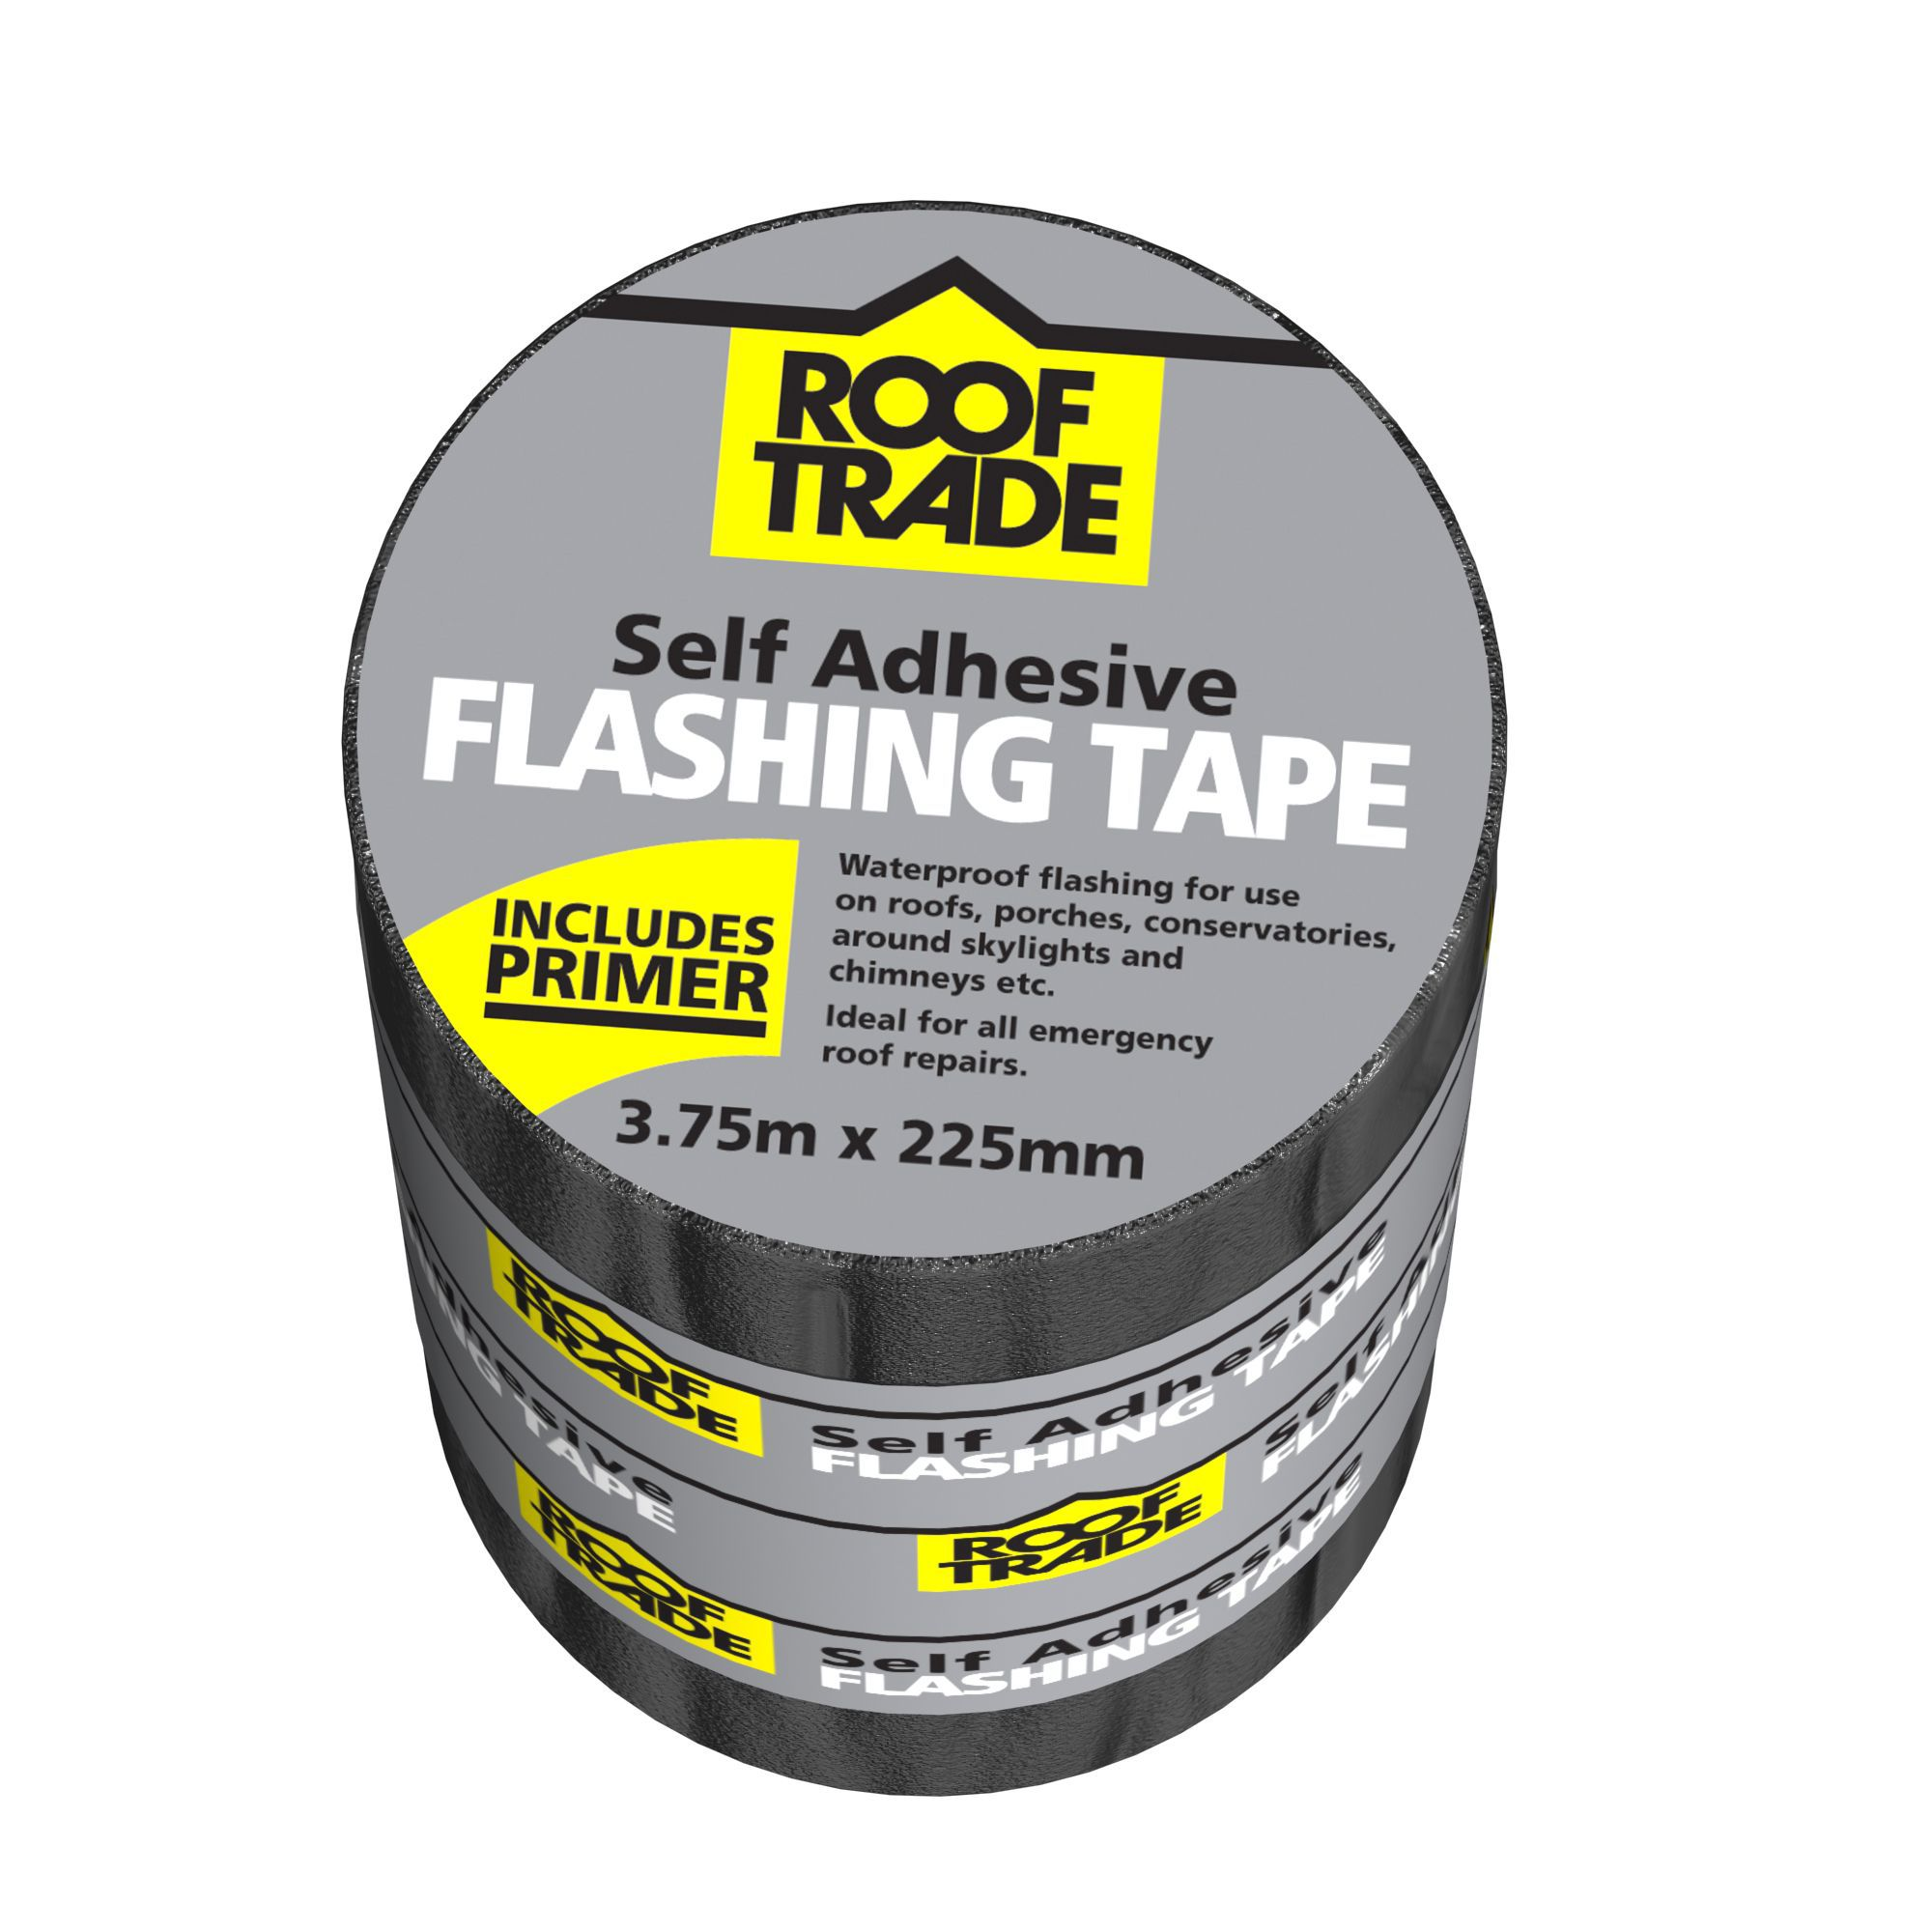 Evo-stik Rooftrade Grey Flashing Tape (l)3.75m (w)225mm